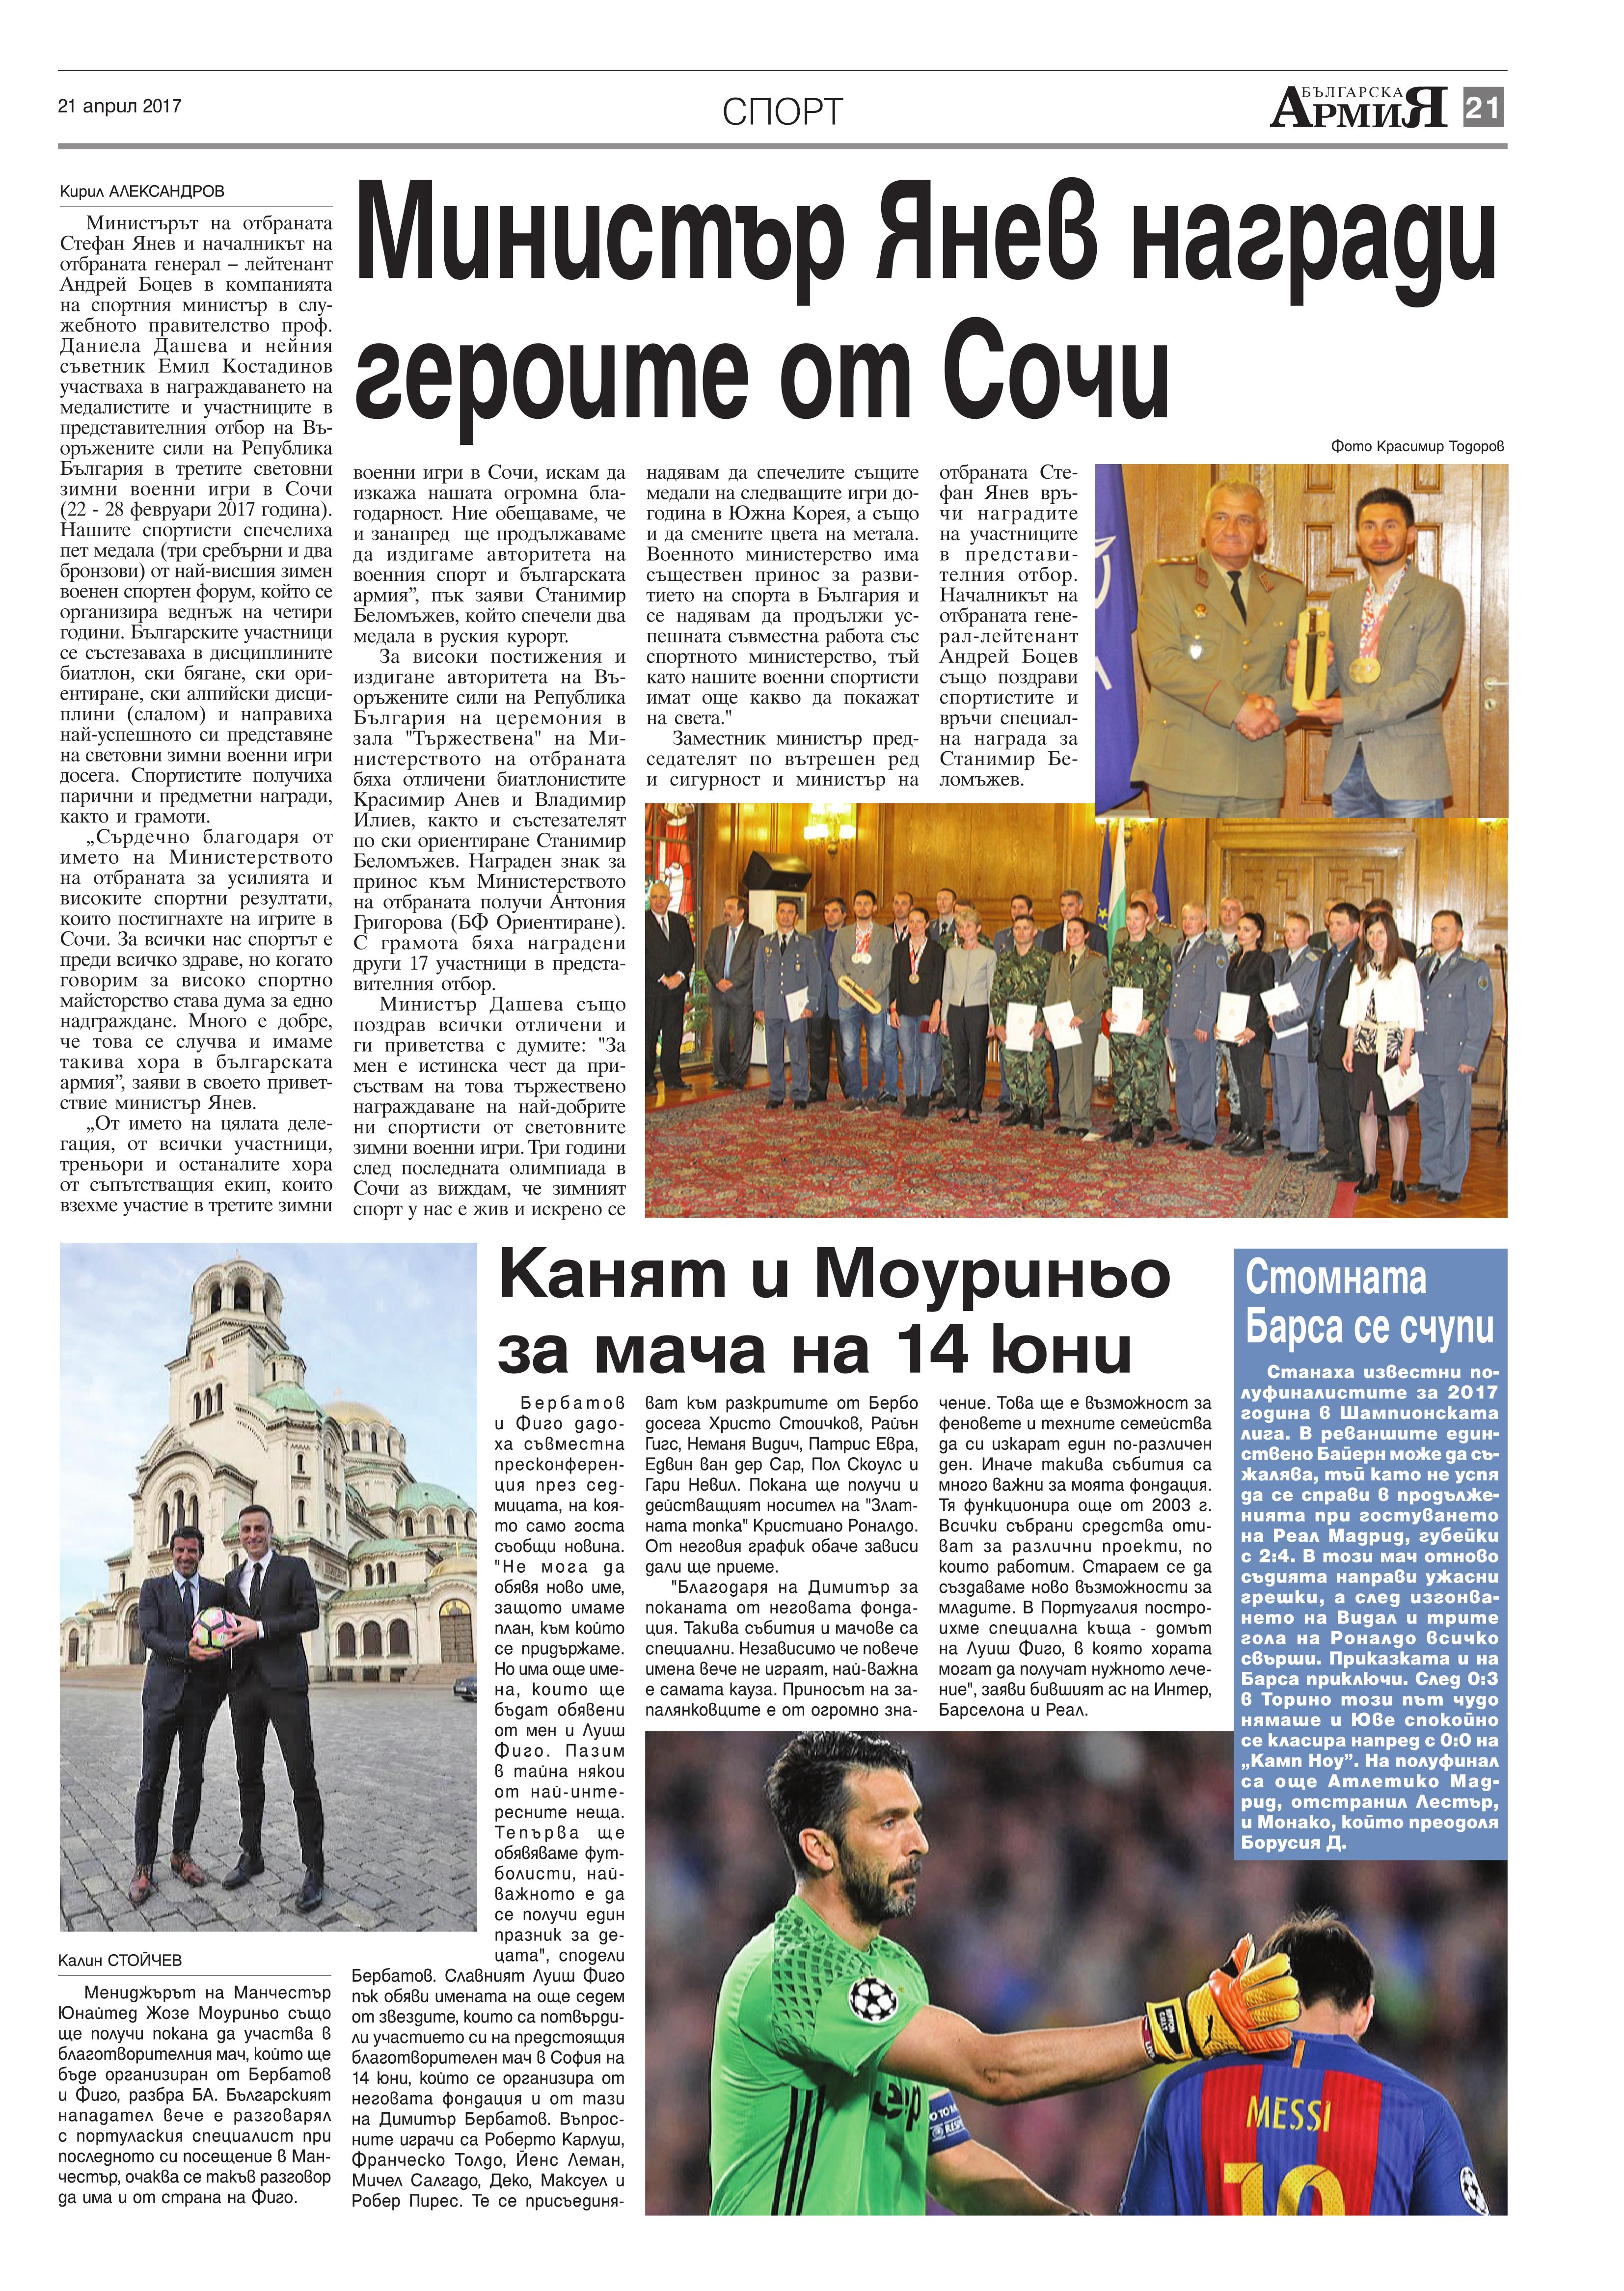 http://armymedia.bg/wp-content/uploads/2015/06/21.page1_-19.jpg